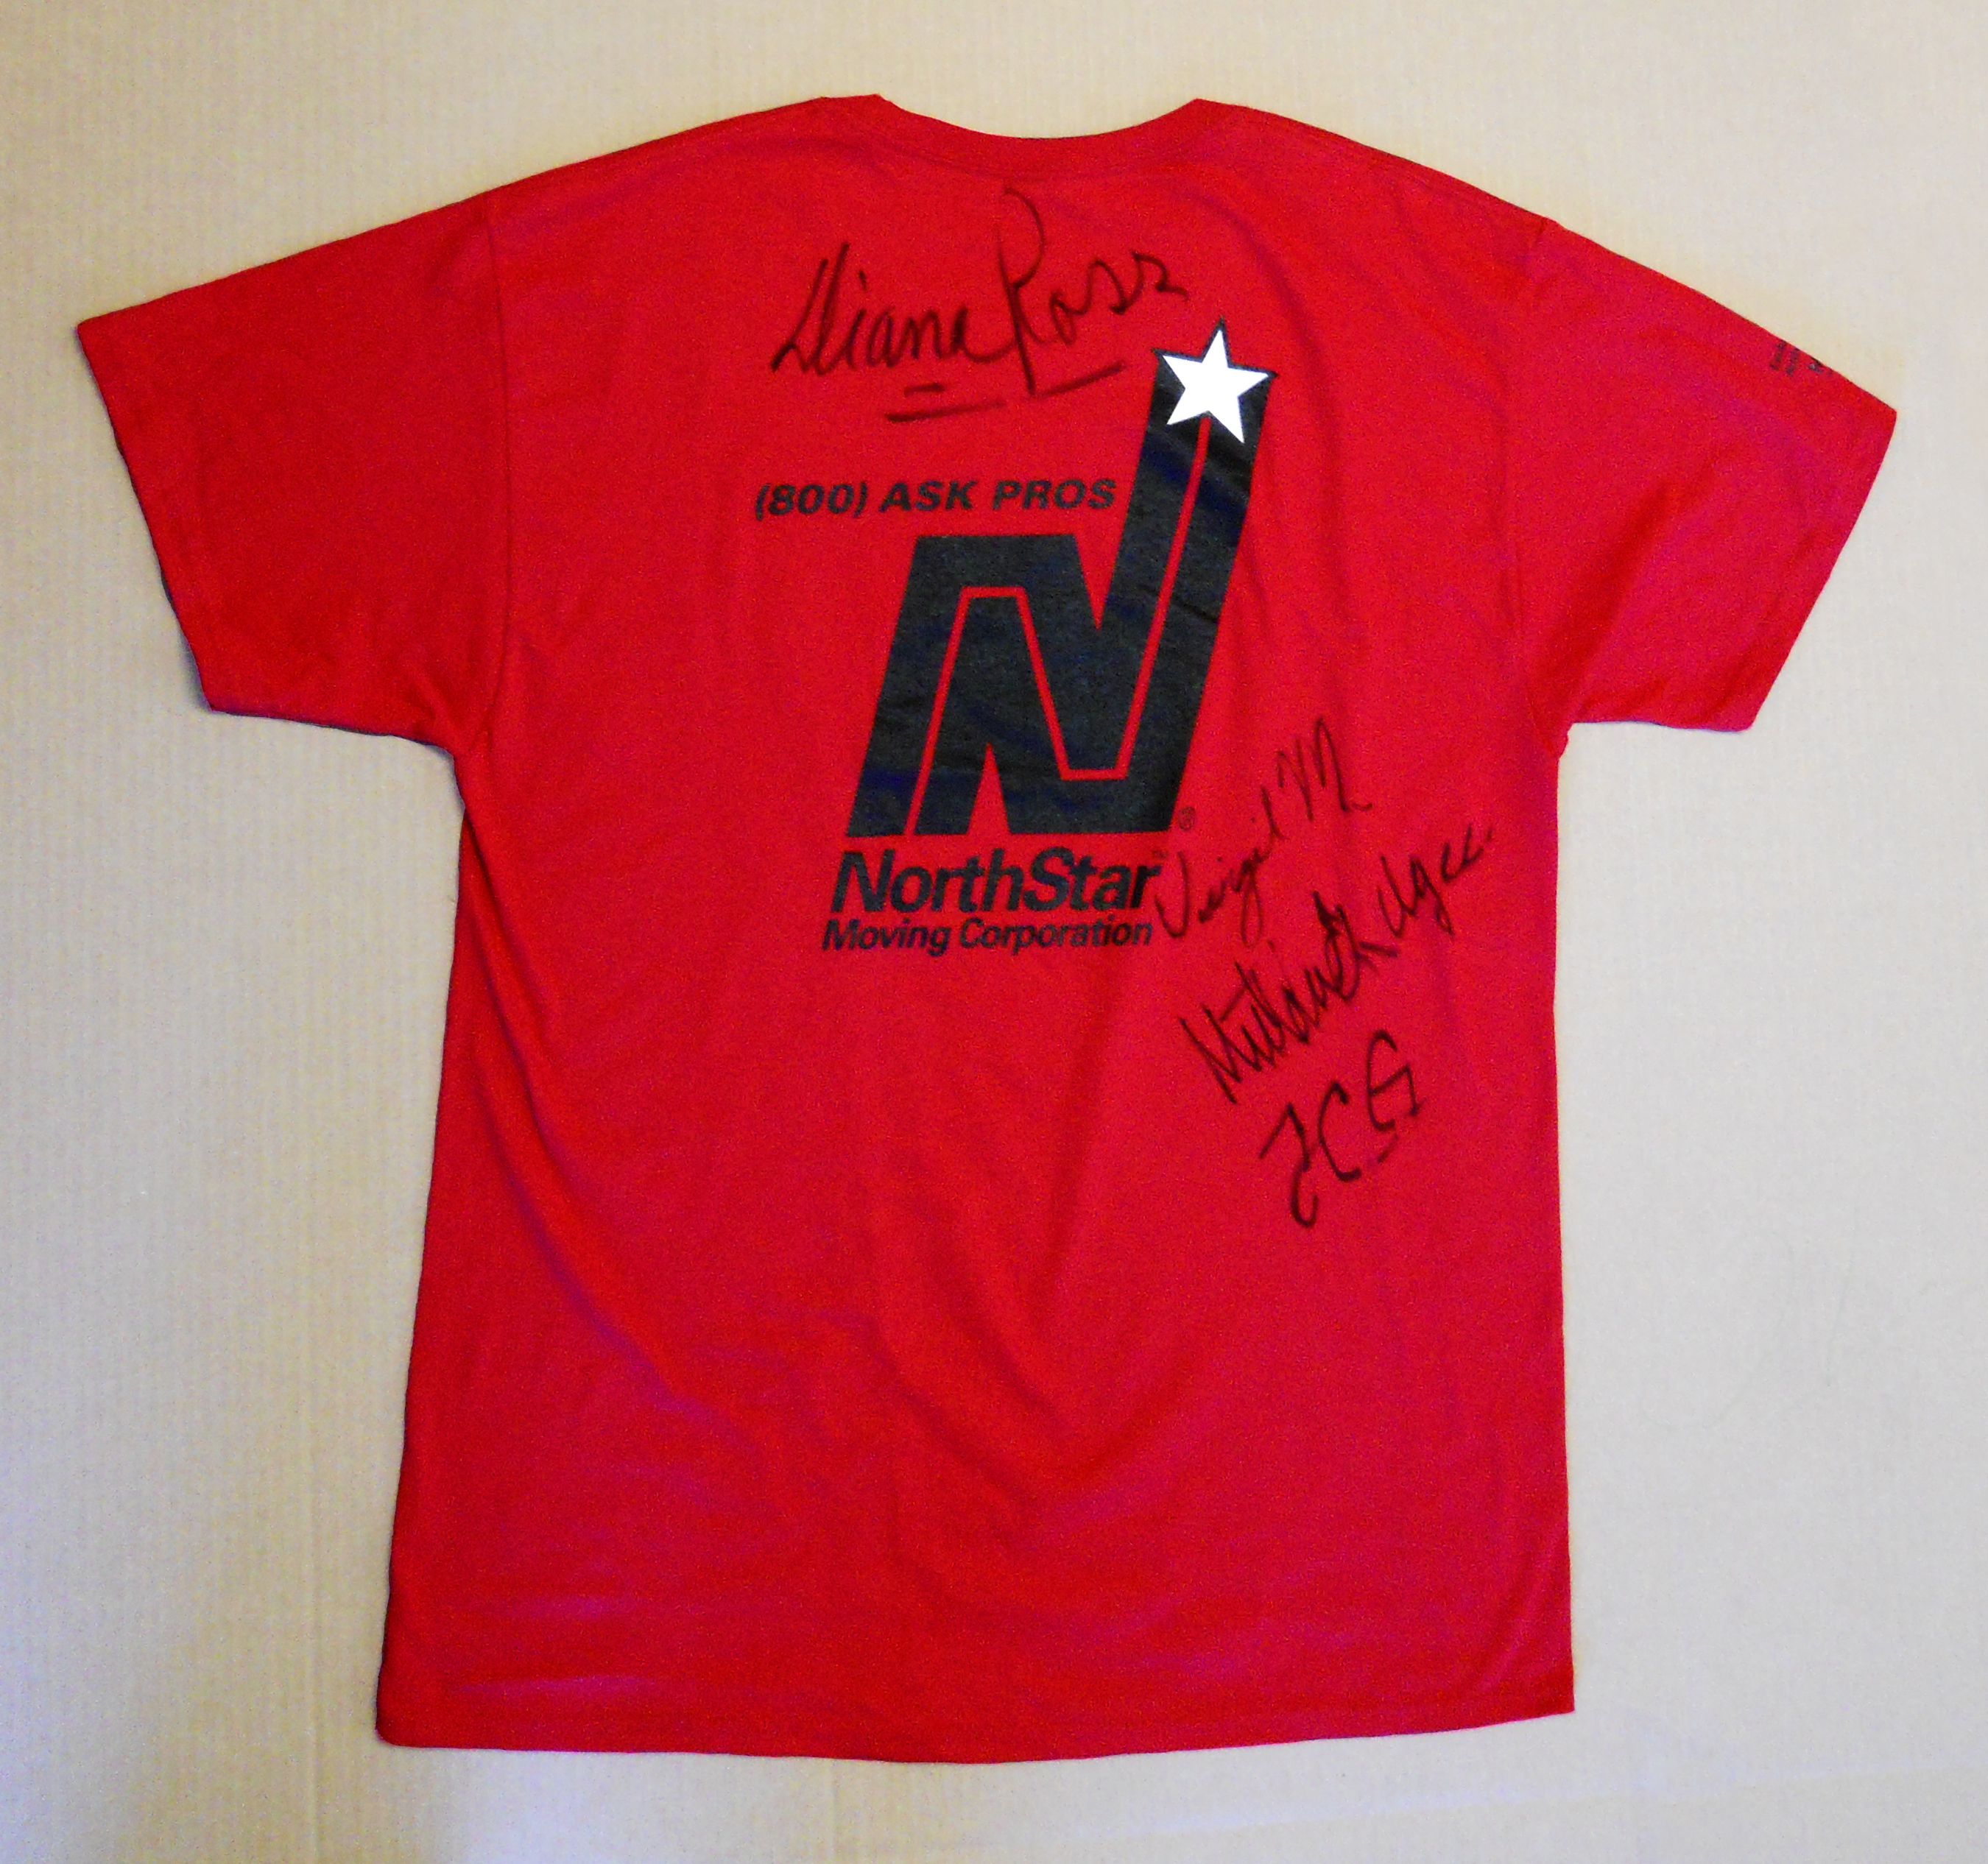 Diana Ross autographed shirt